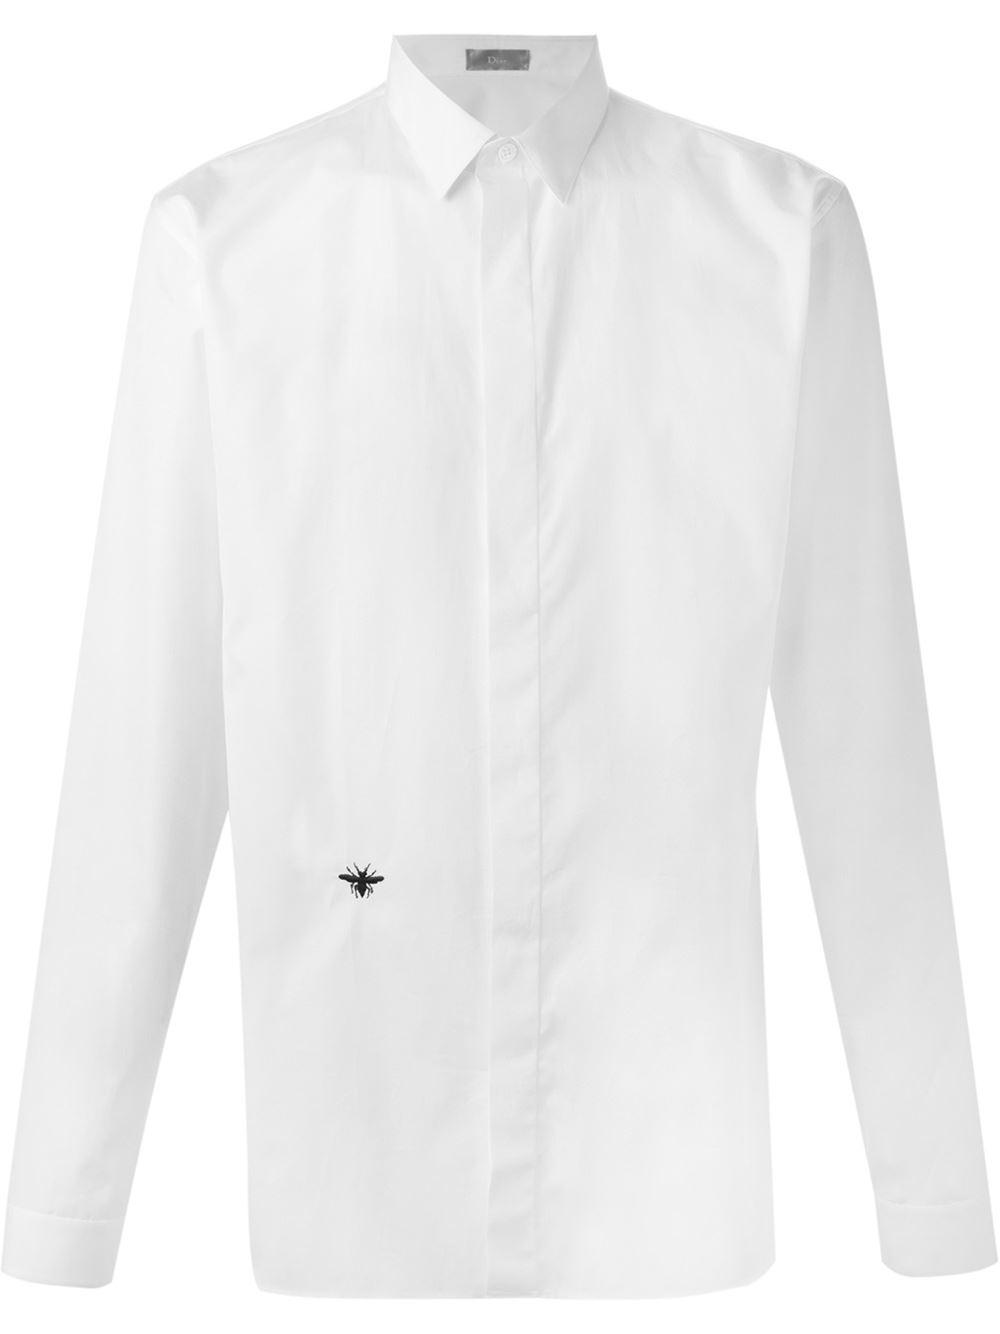 Dior homme bee embroidery shirt men cotton in